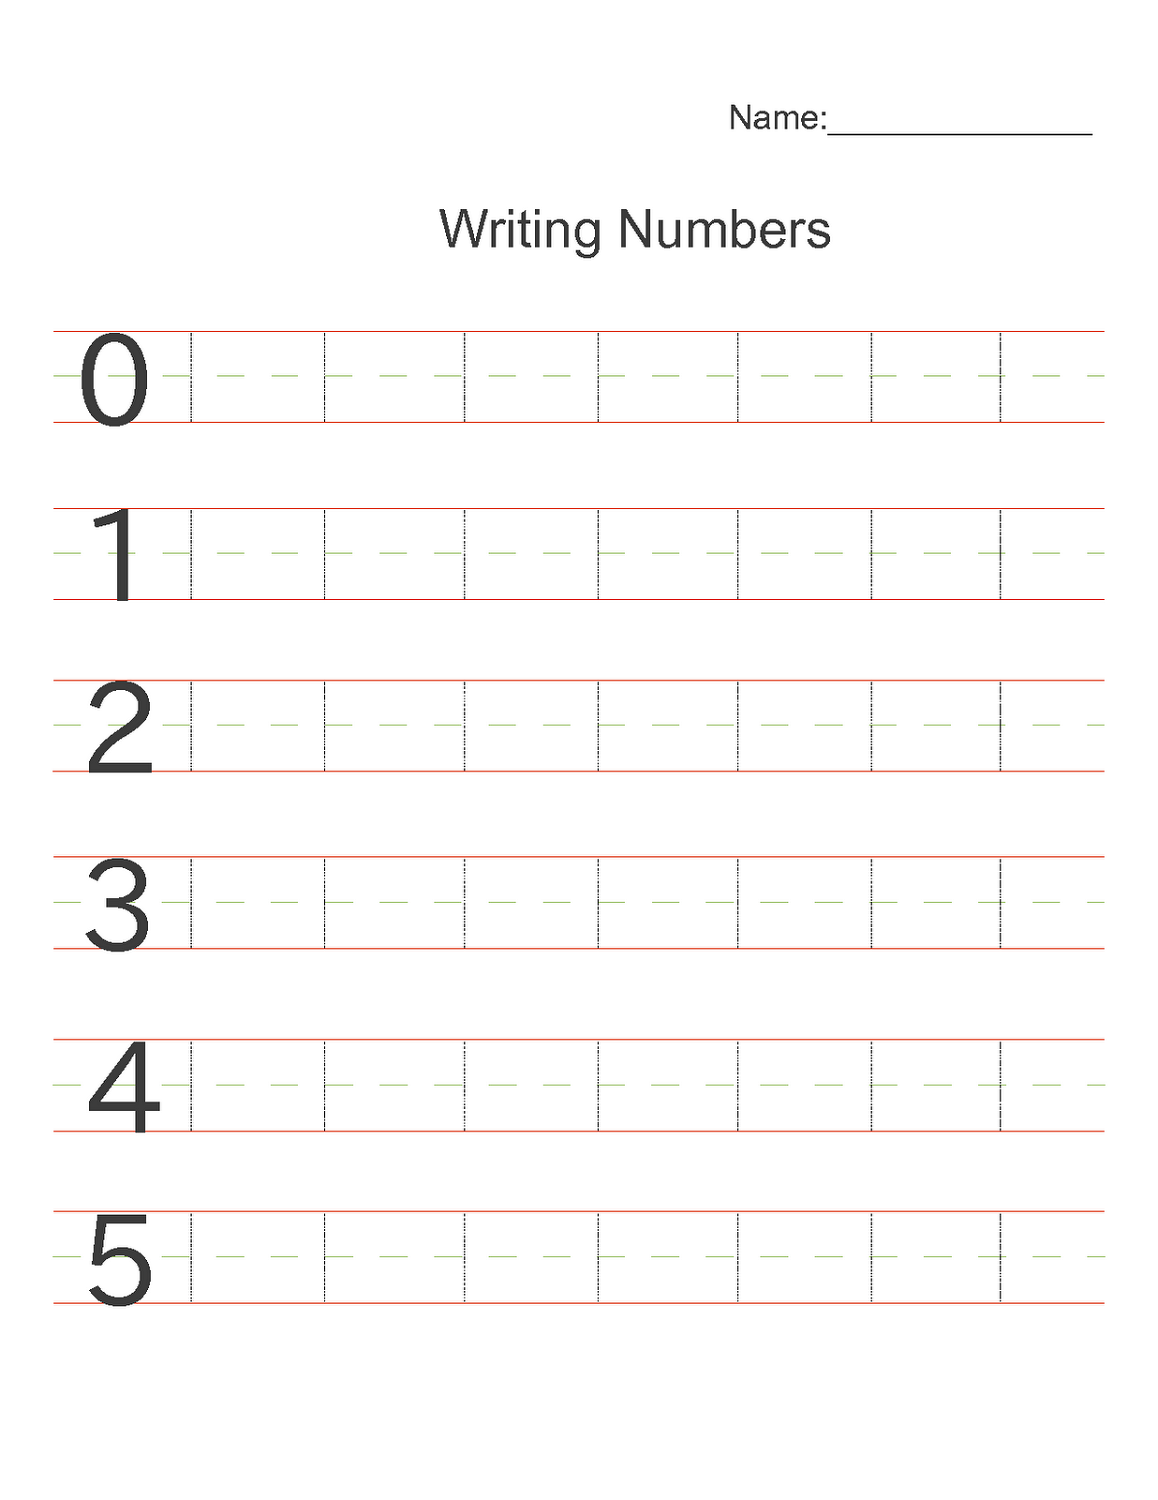 Writing Numbers 1 10 Worksheets : Printable number writing worksheets for kindergarten